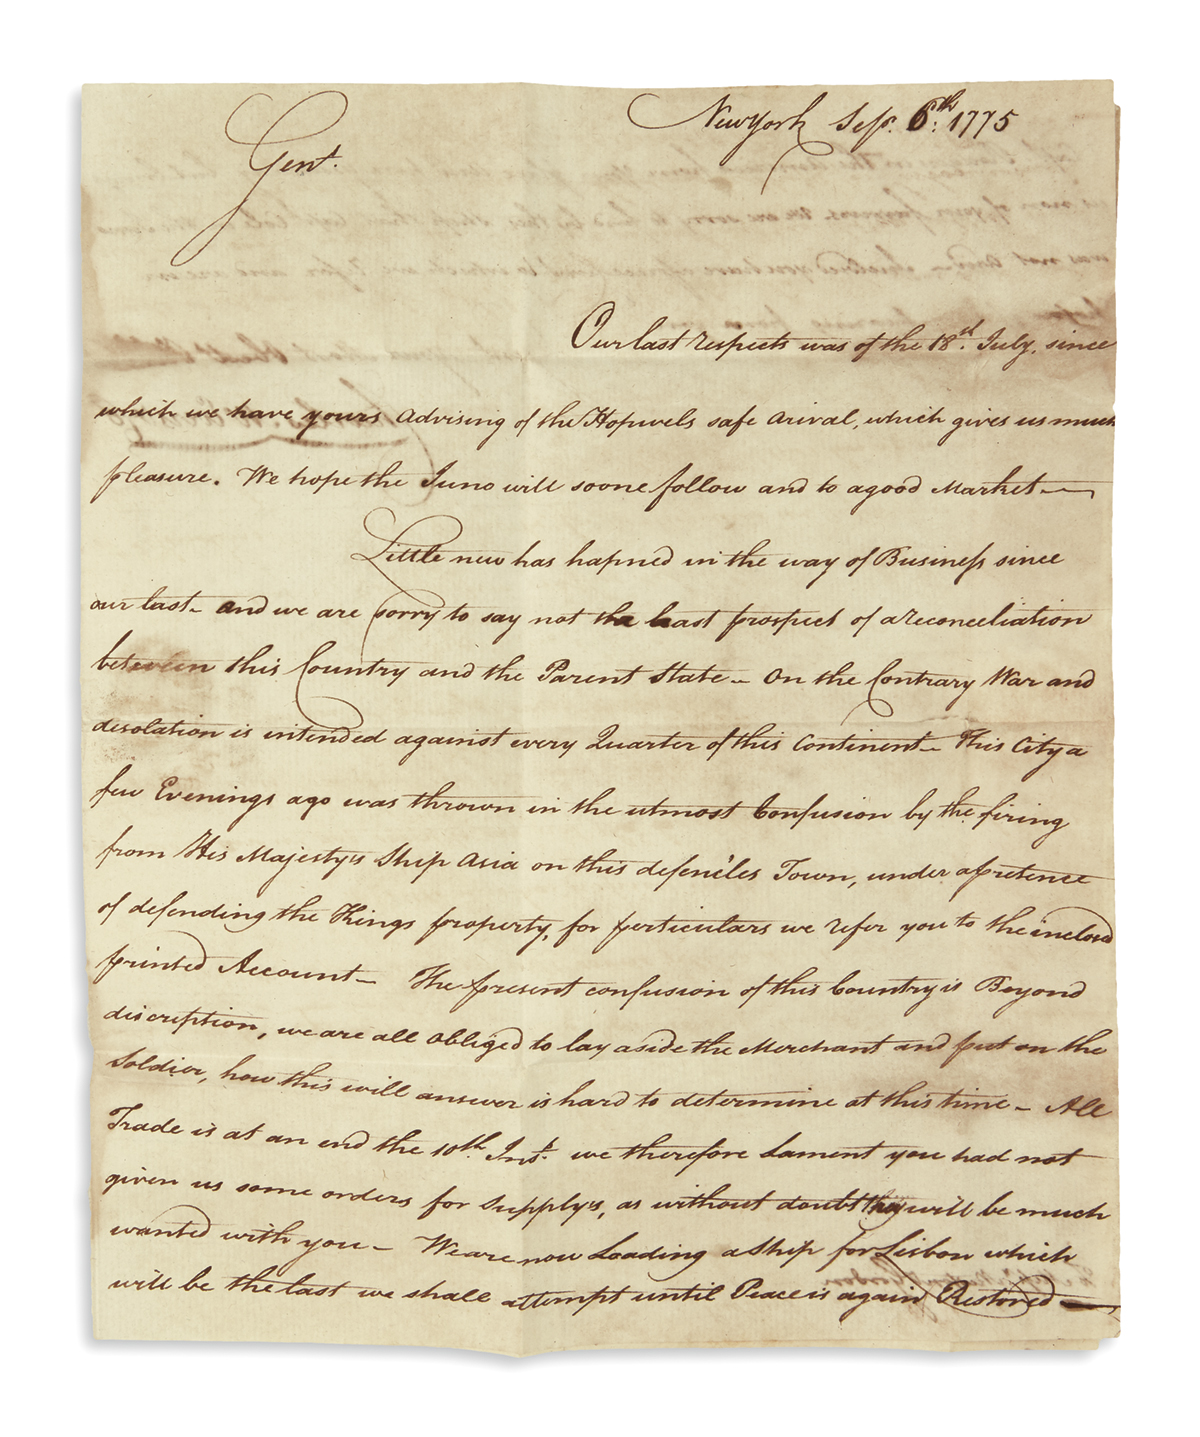 (AMERICAN REVOLUTION--1775.) Charles McEvers & Co. Letters describing unrest and British artillery fire in New York.